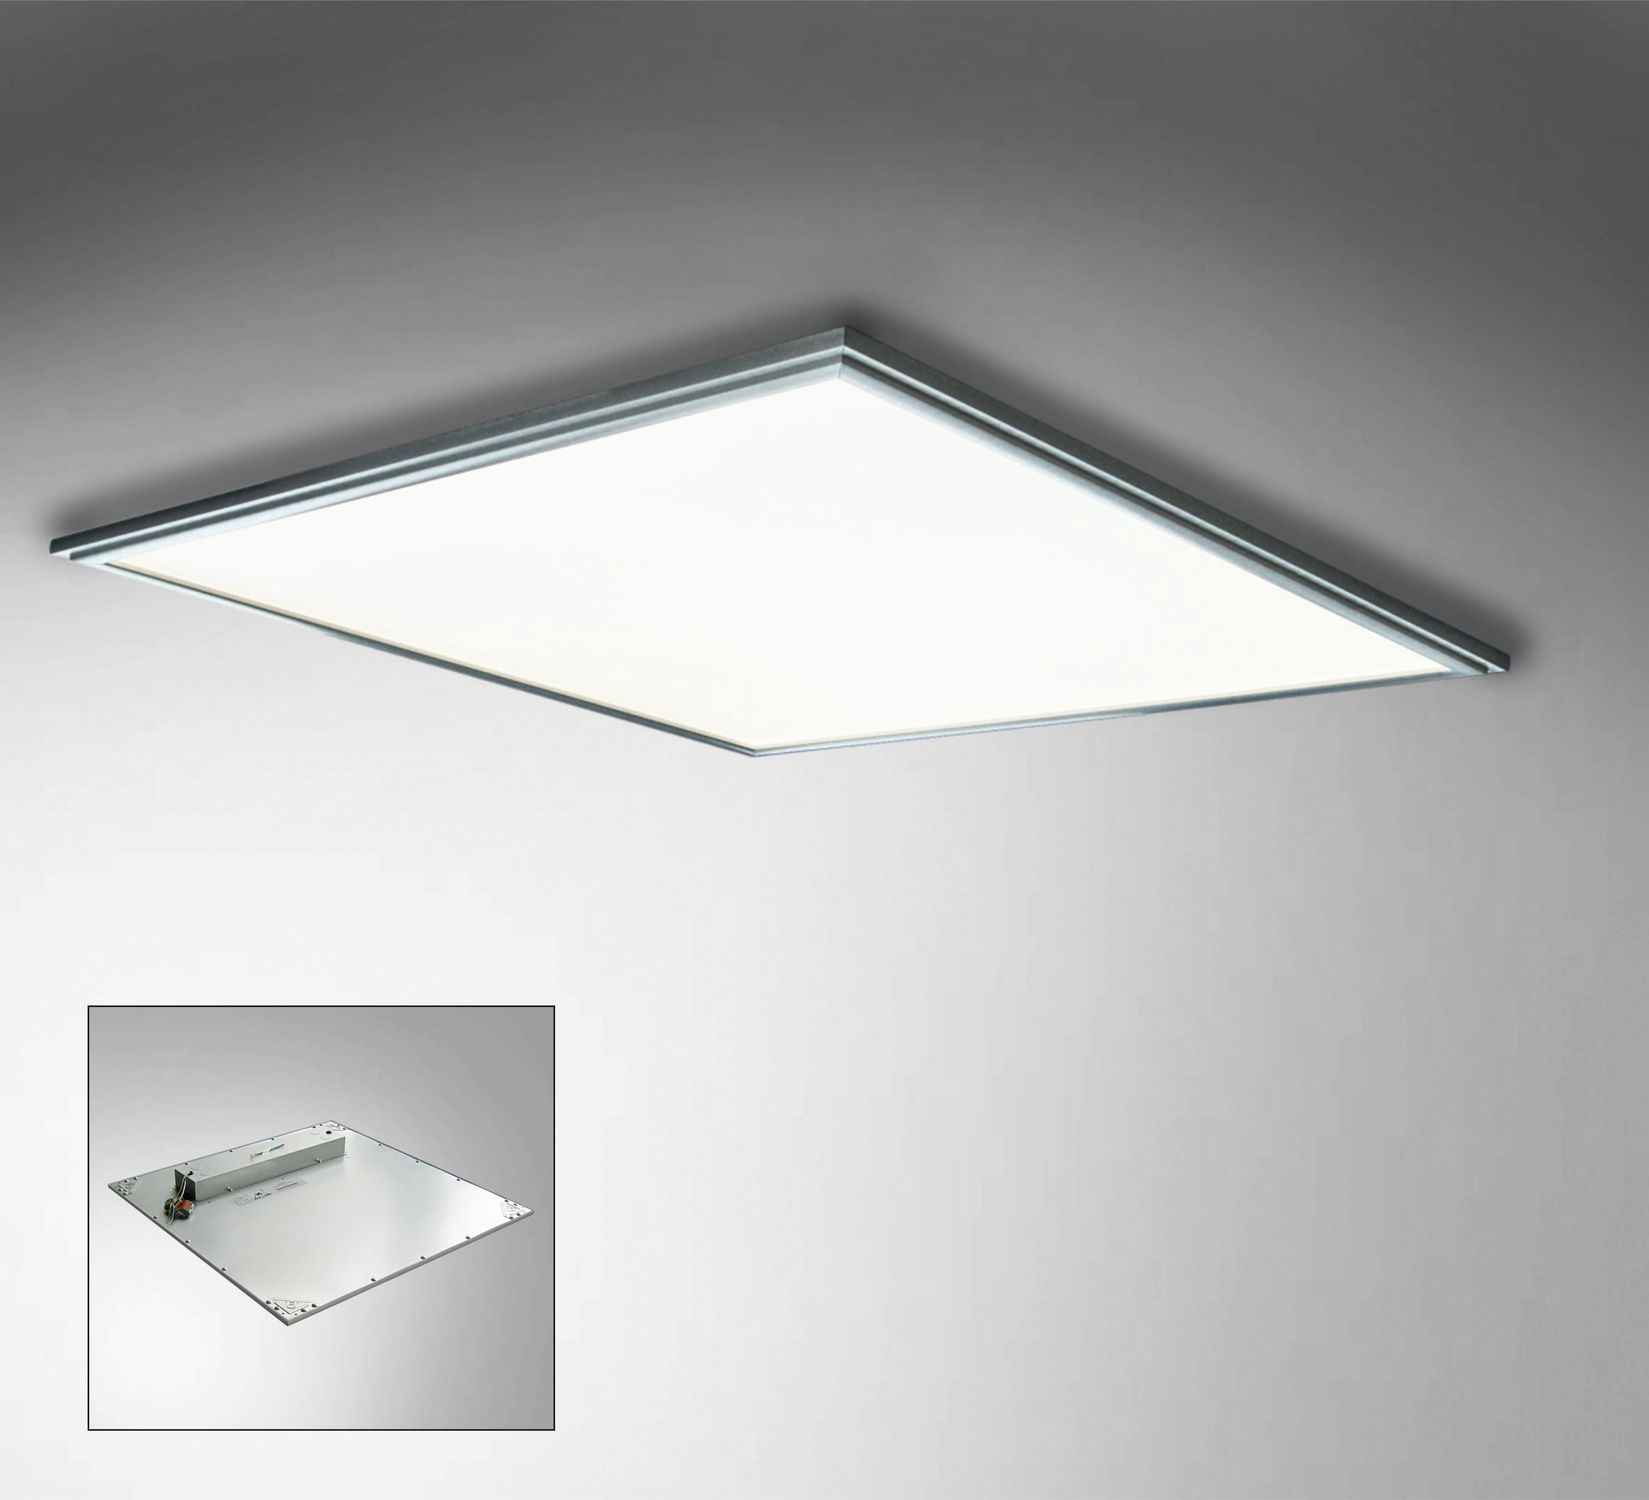 recessed ceiling light fixture  led  rectangular  square  led  -  recessed ceiling light fixture  led  rectangular  square led  gridpanel